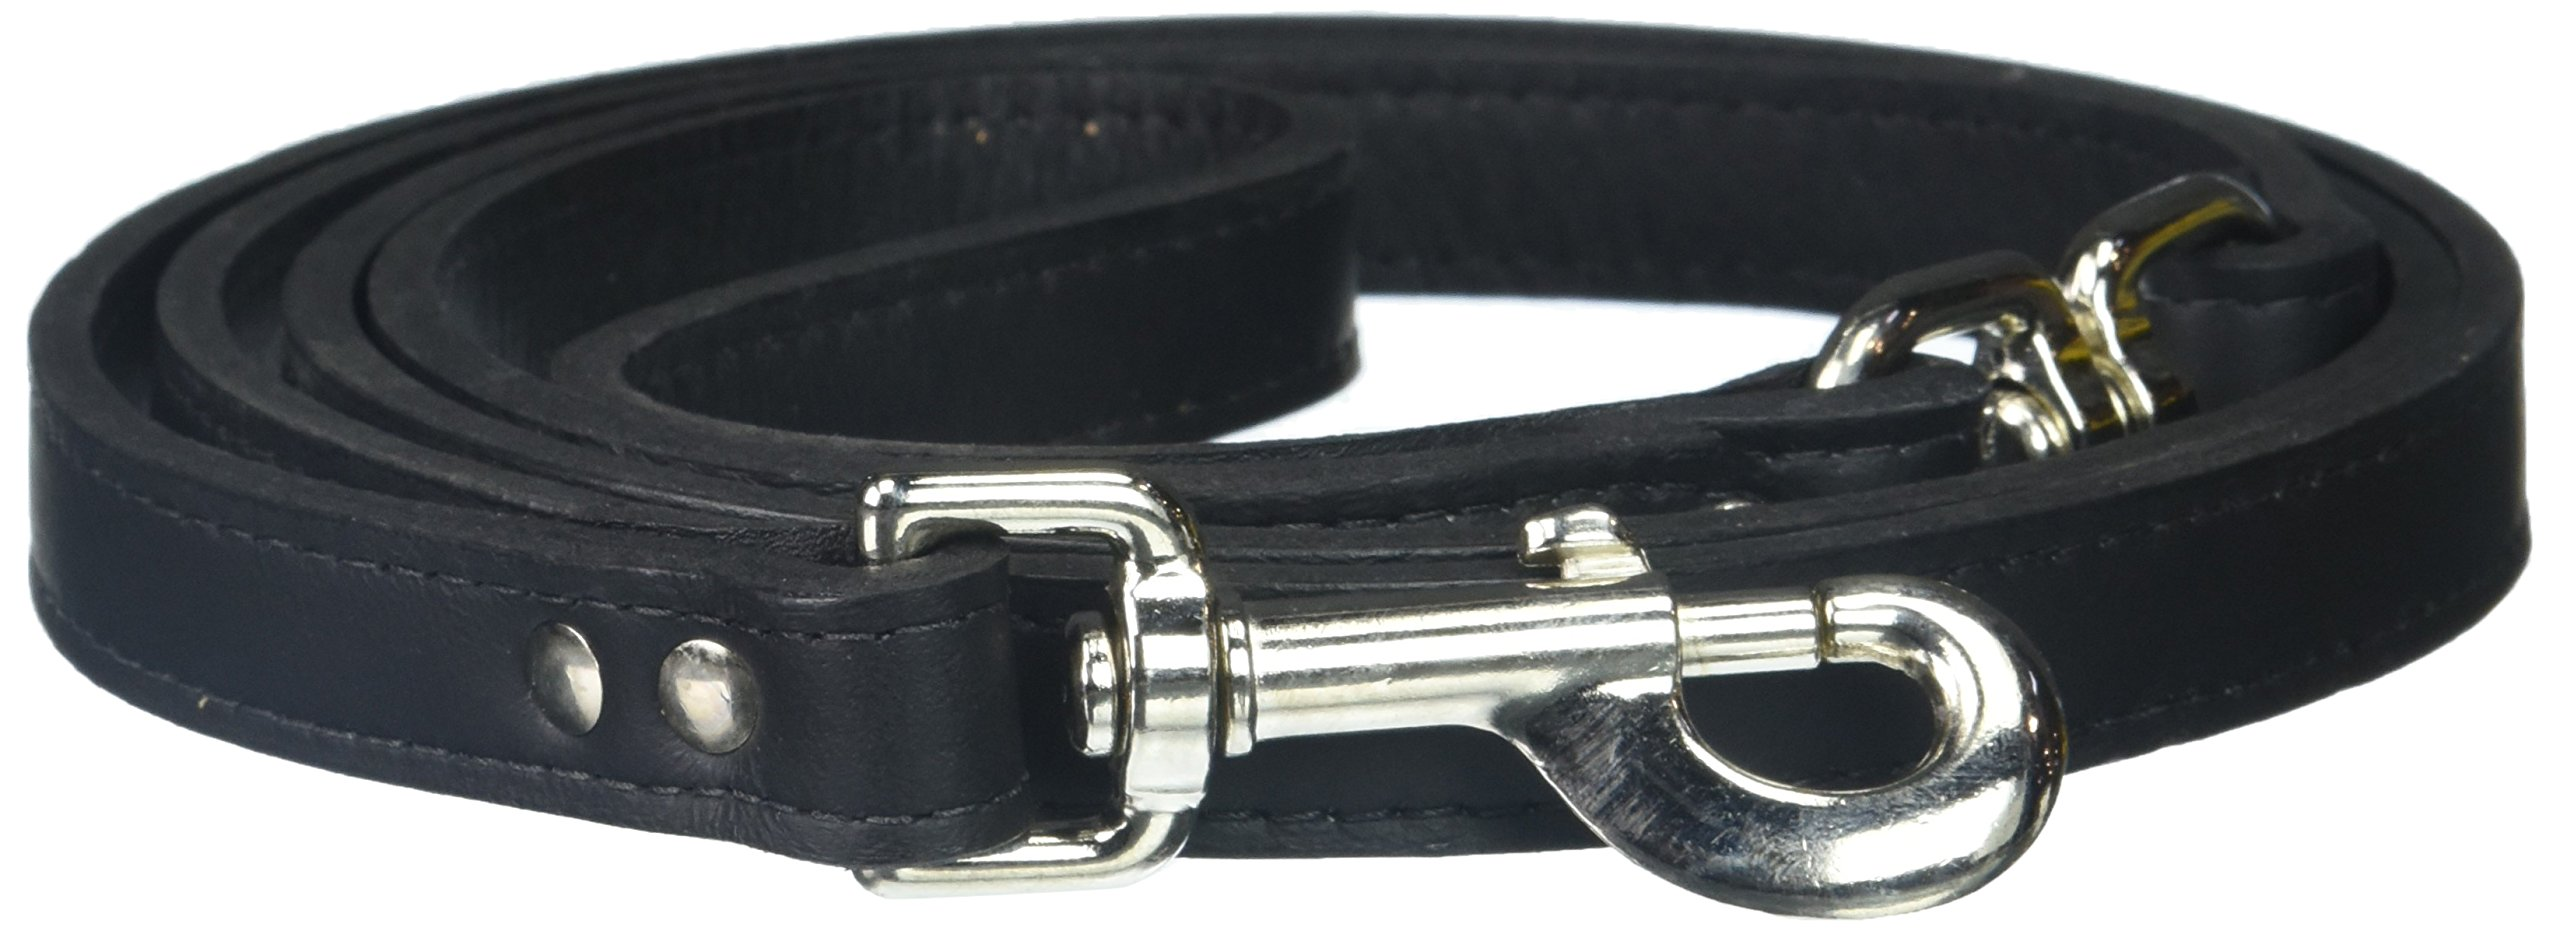 OmniPet Signature Leather Dog Lead with a Swivel, 3/4 x 6', Black